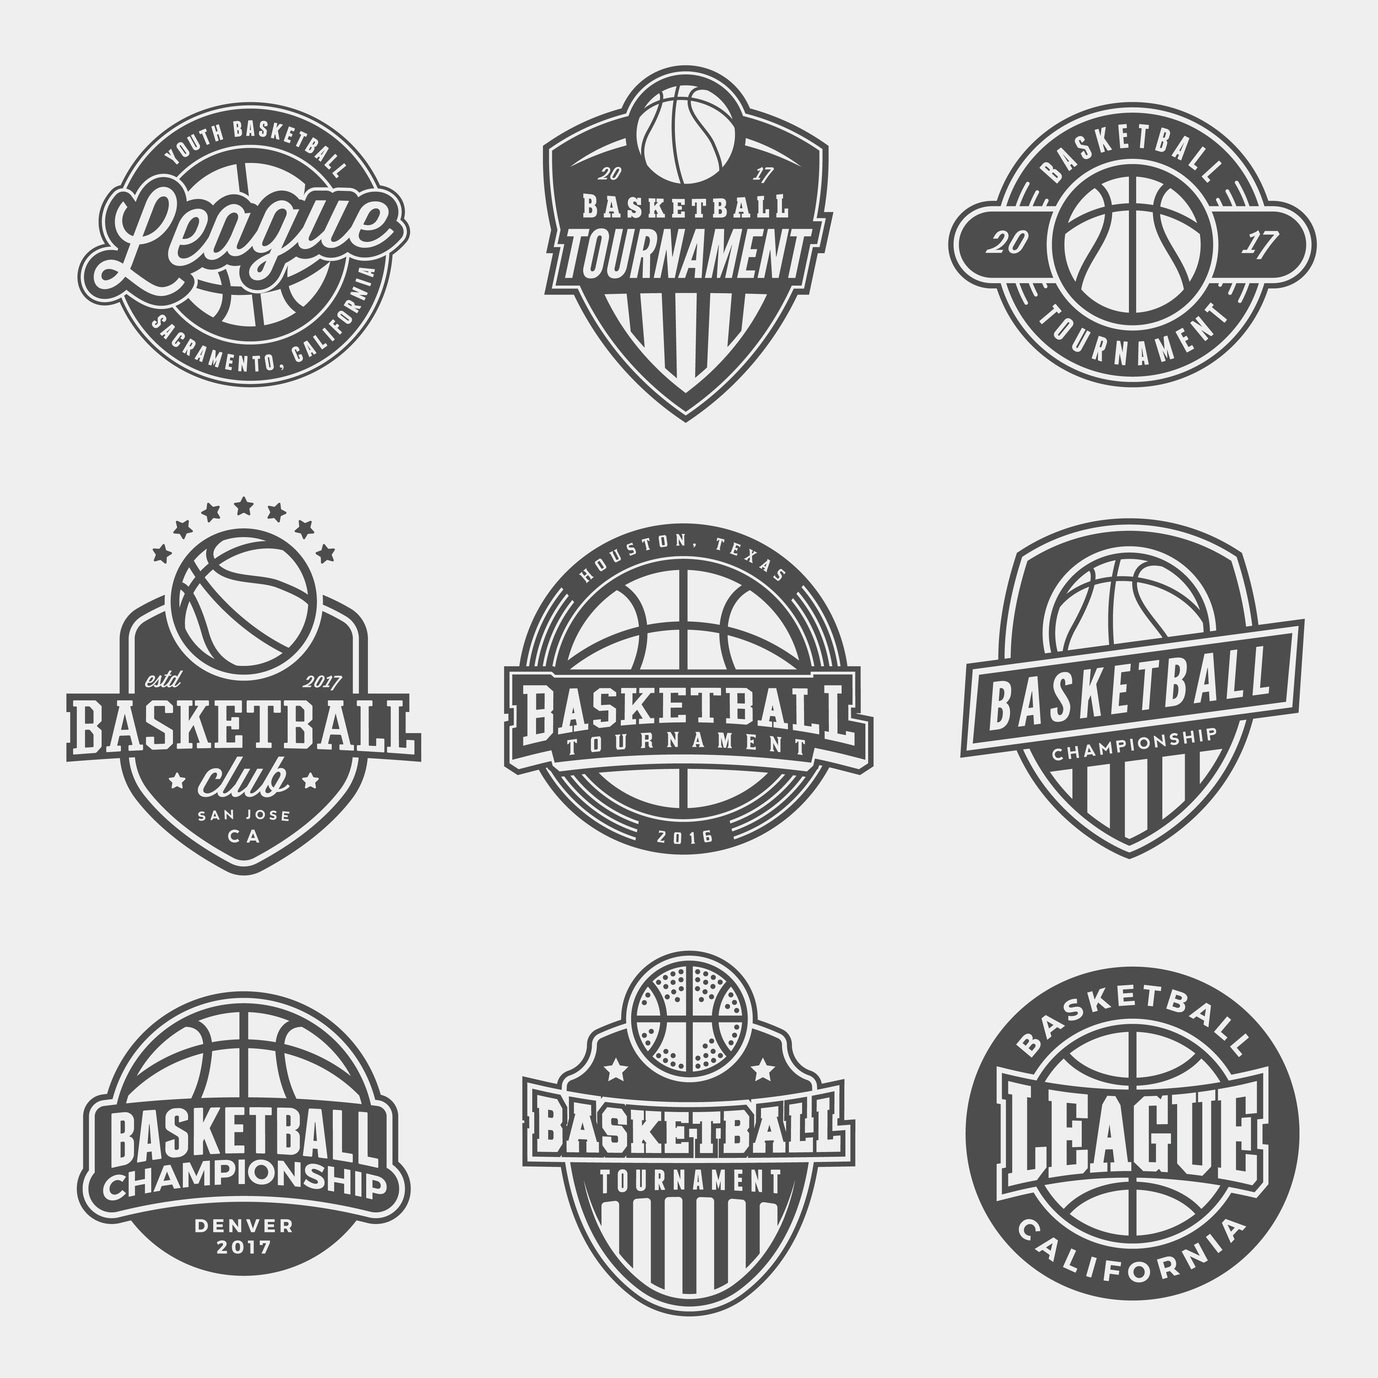 basketball logo design black and white best logo 2018. Black Bedroom Furniture Sets. Home Design Ideas